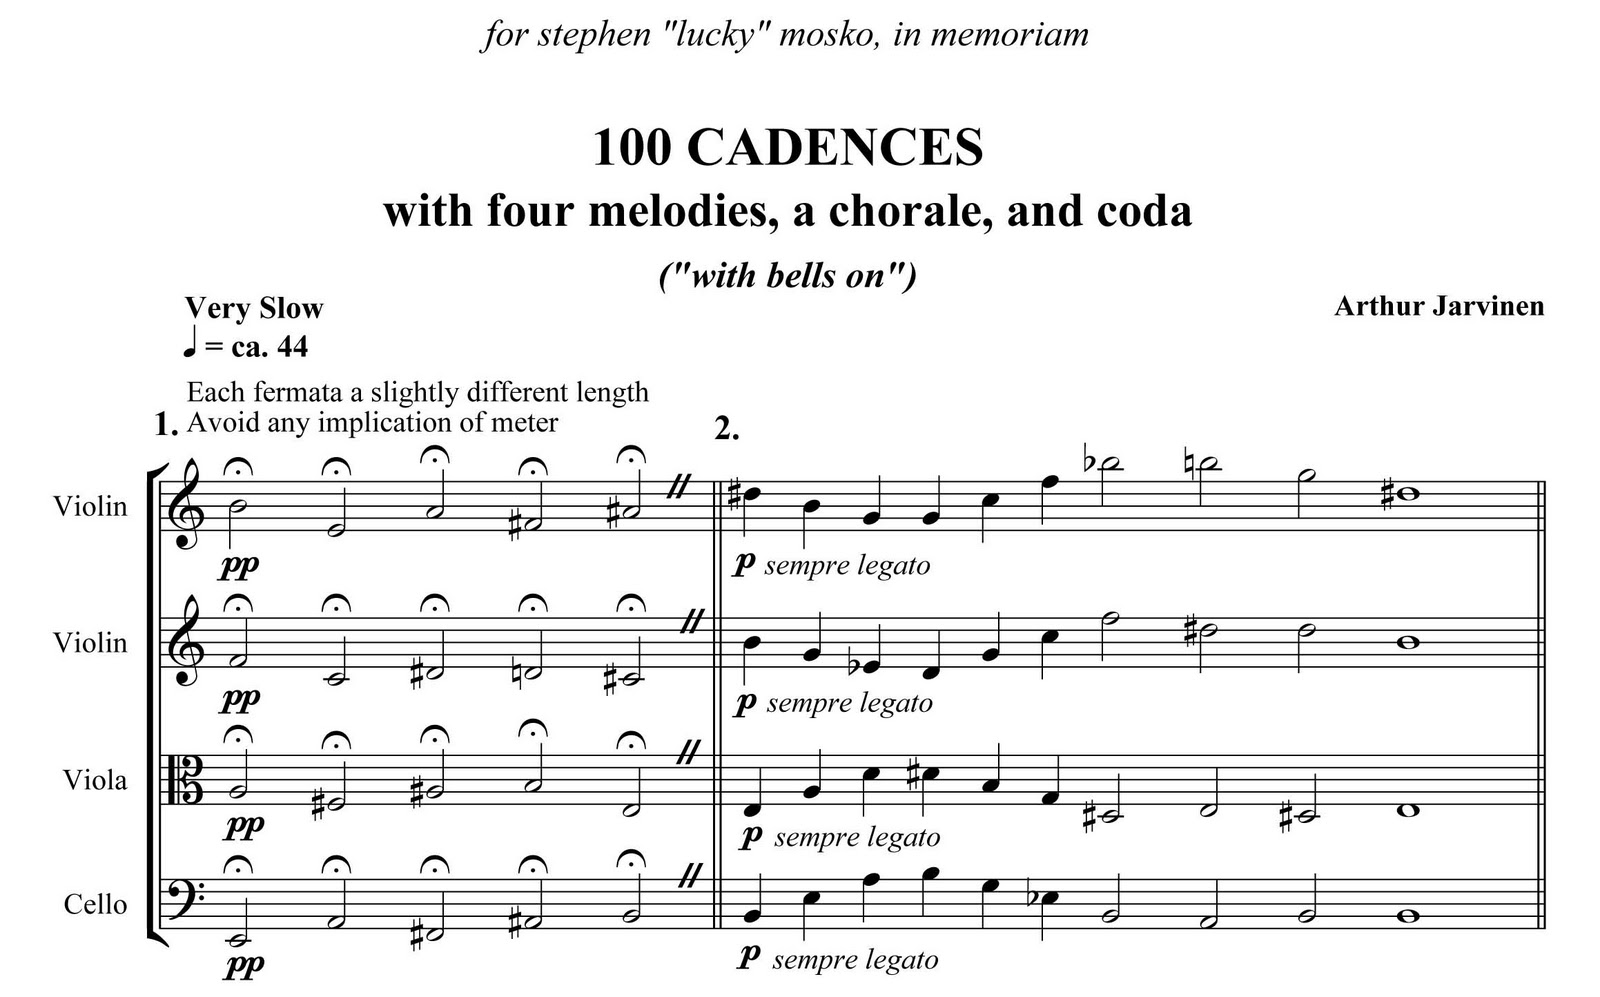 Musical score to 100 Cadences for string quartet by Arthur Jarvinen - first system